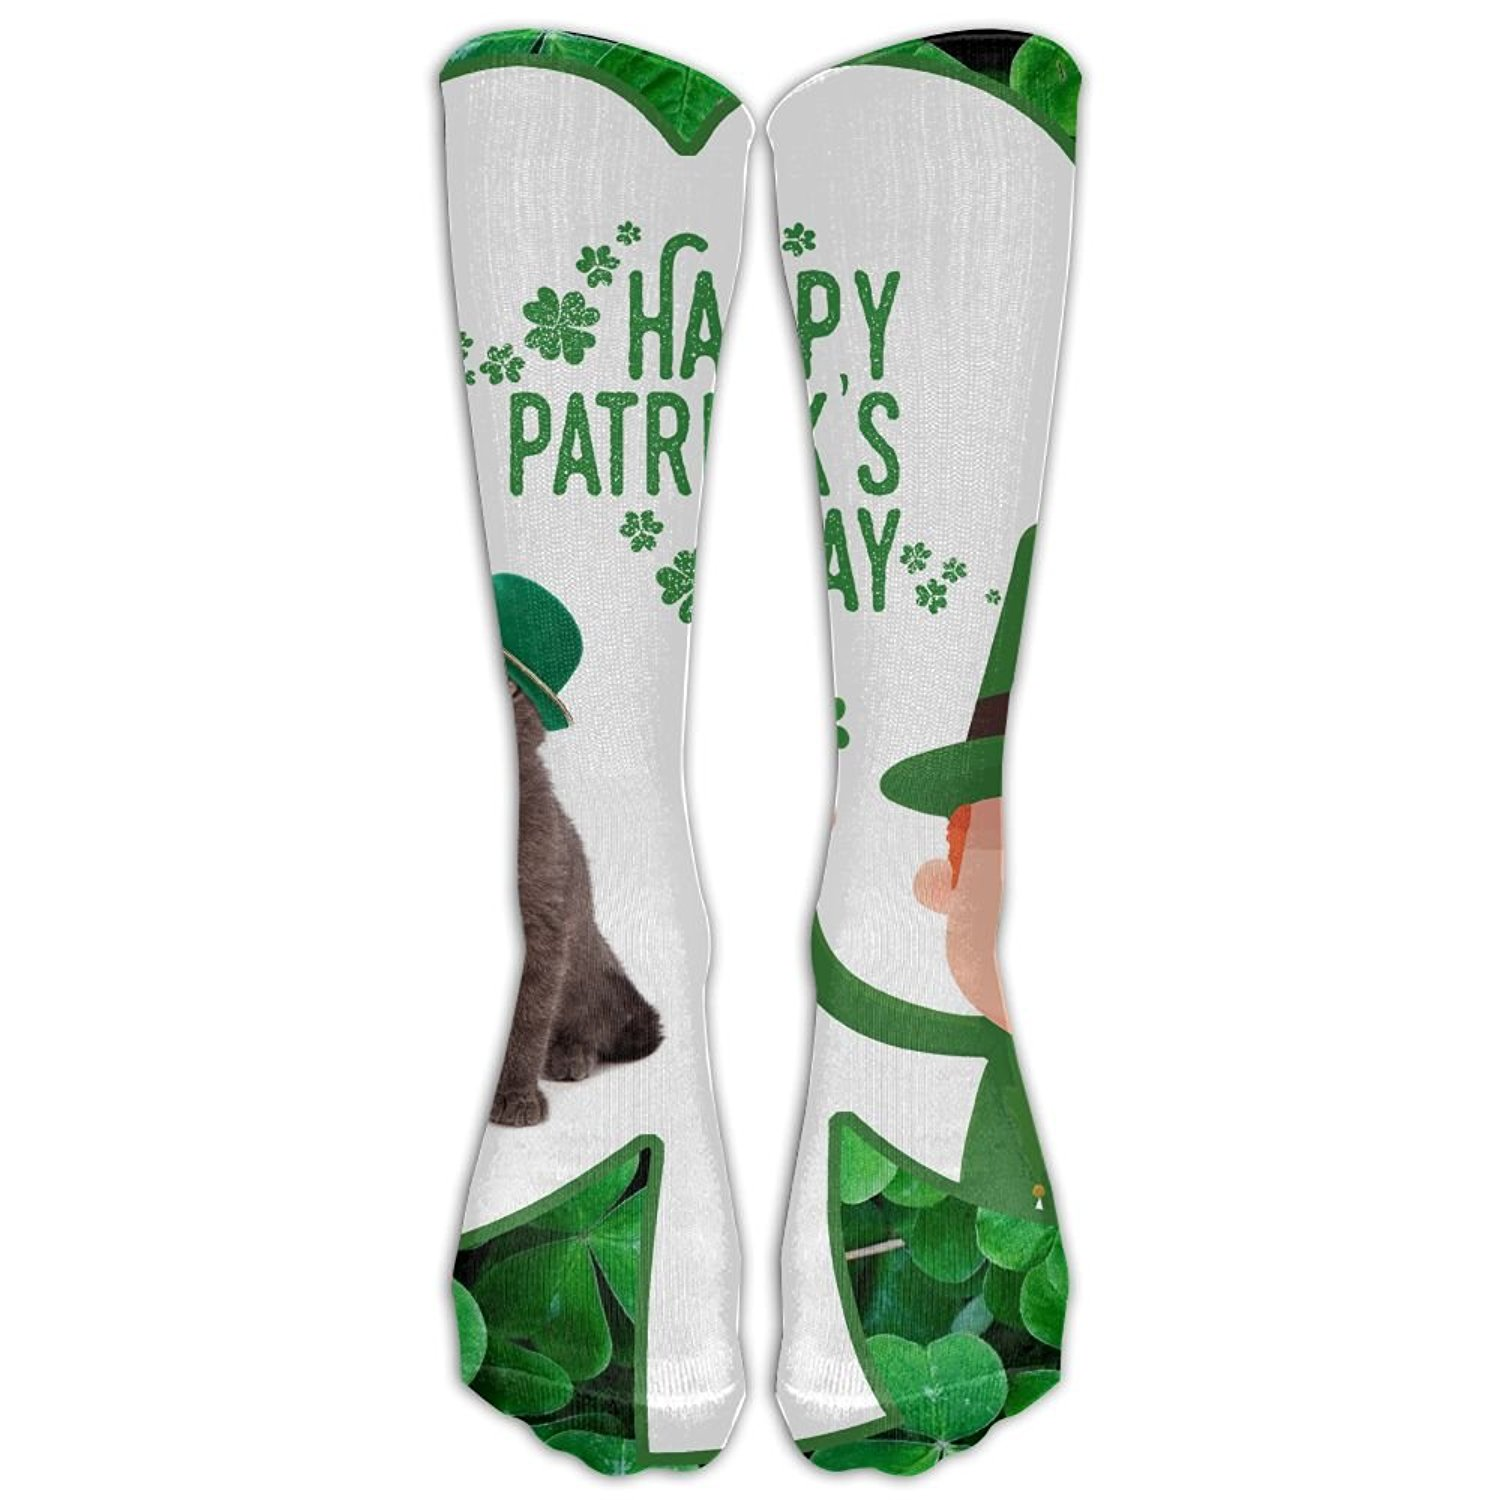 547c5077a31 Get Quotations · St.Patrick s Day Girls Womens Knee Tube Socks Funny  Travelers Volleyball Socks